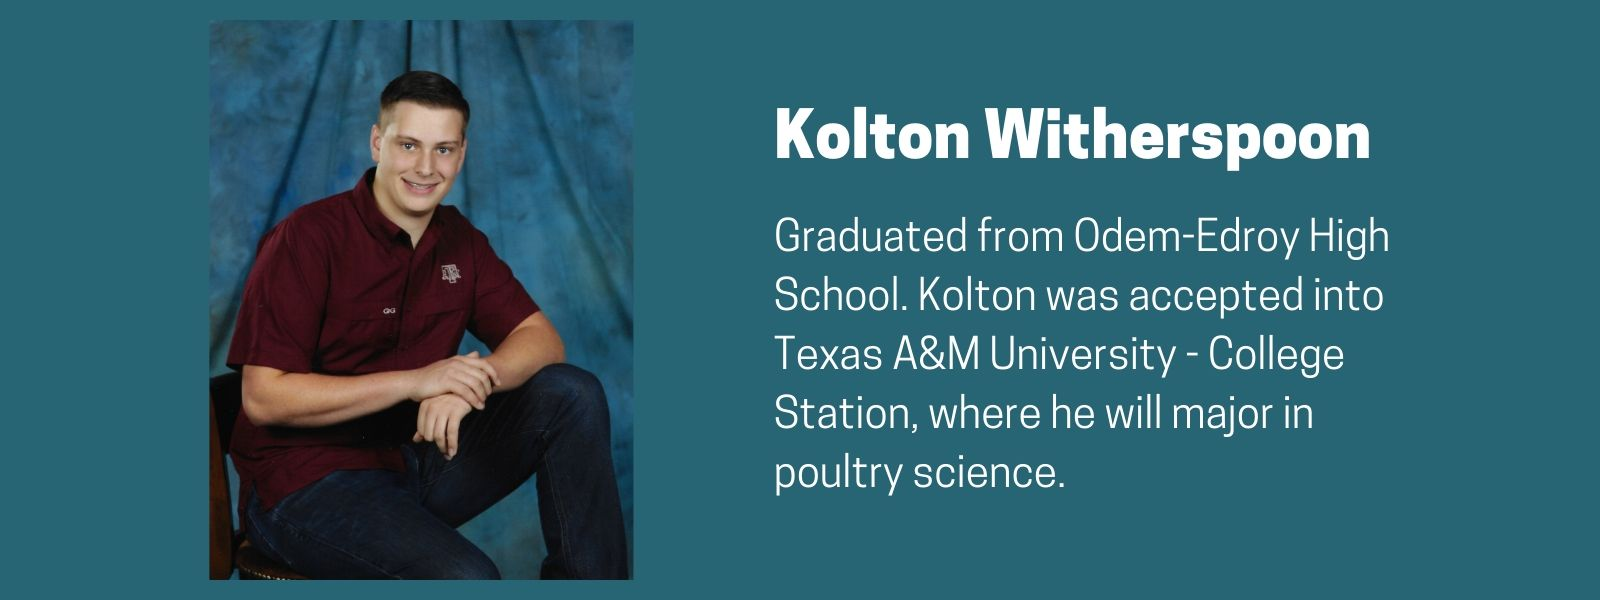 Kolton Witherspoon Scholarship Recipient